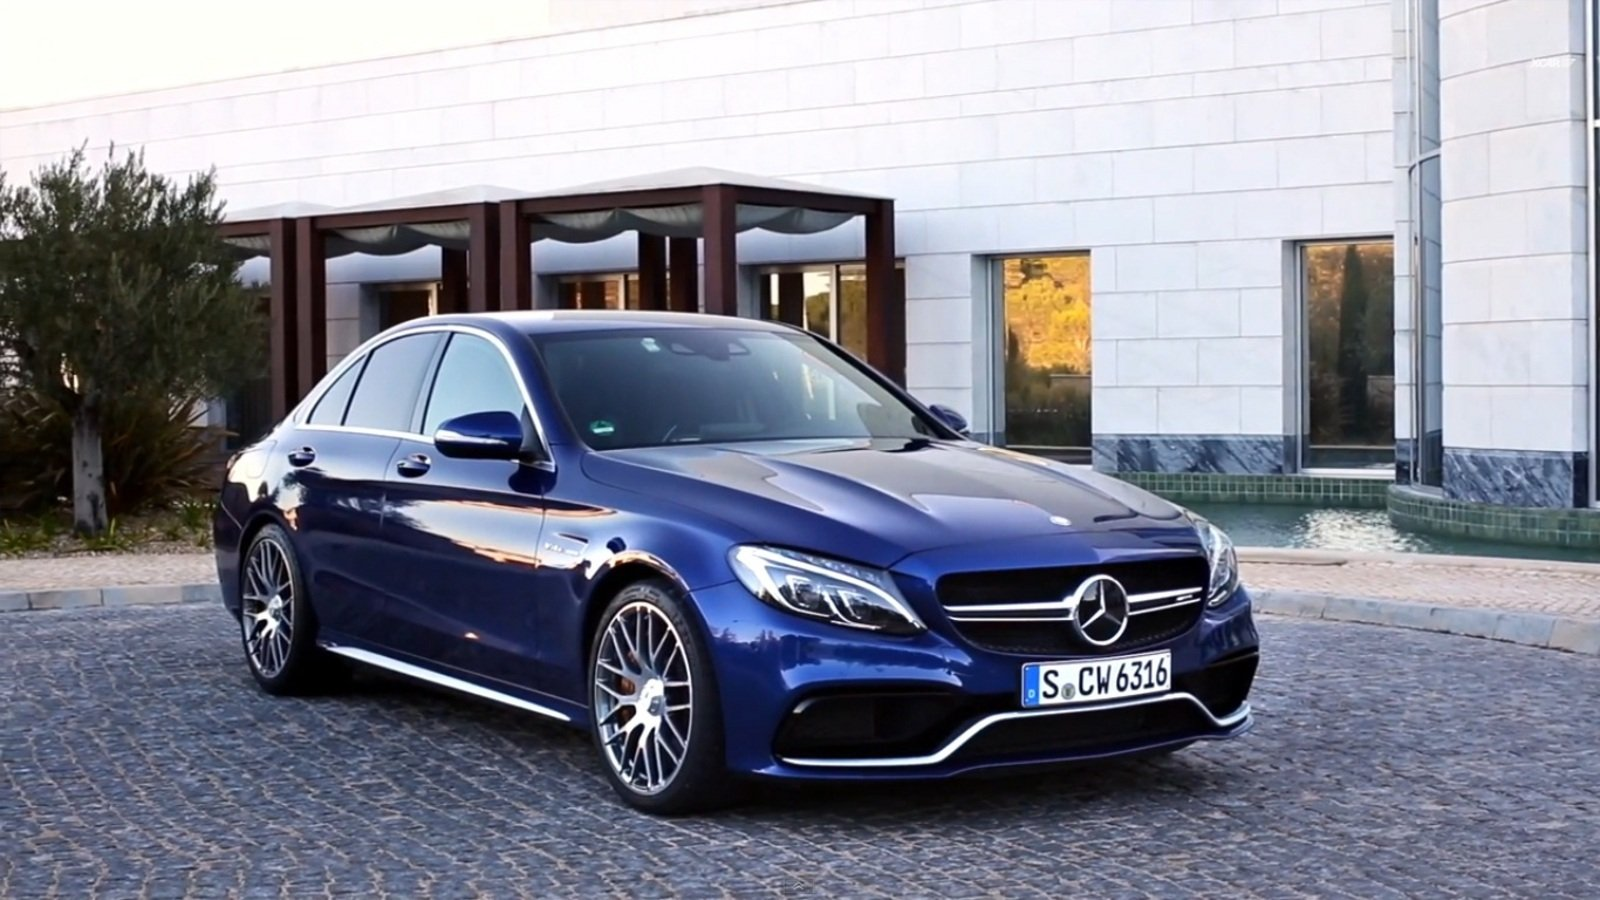 Mercedes amg c63 s reviewed by xcar video news top speed for How much is a mercedes benz c63 amg